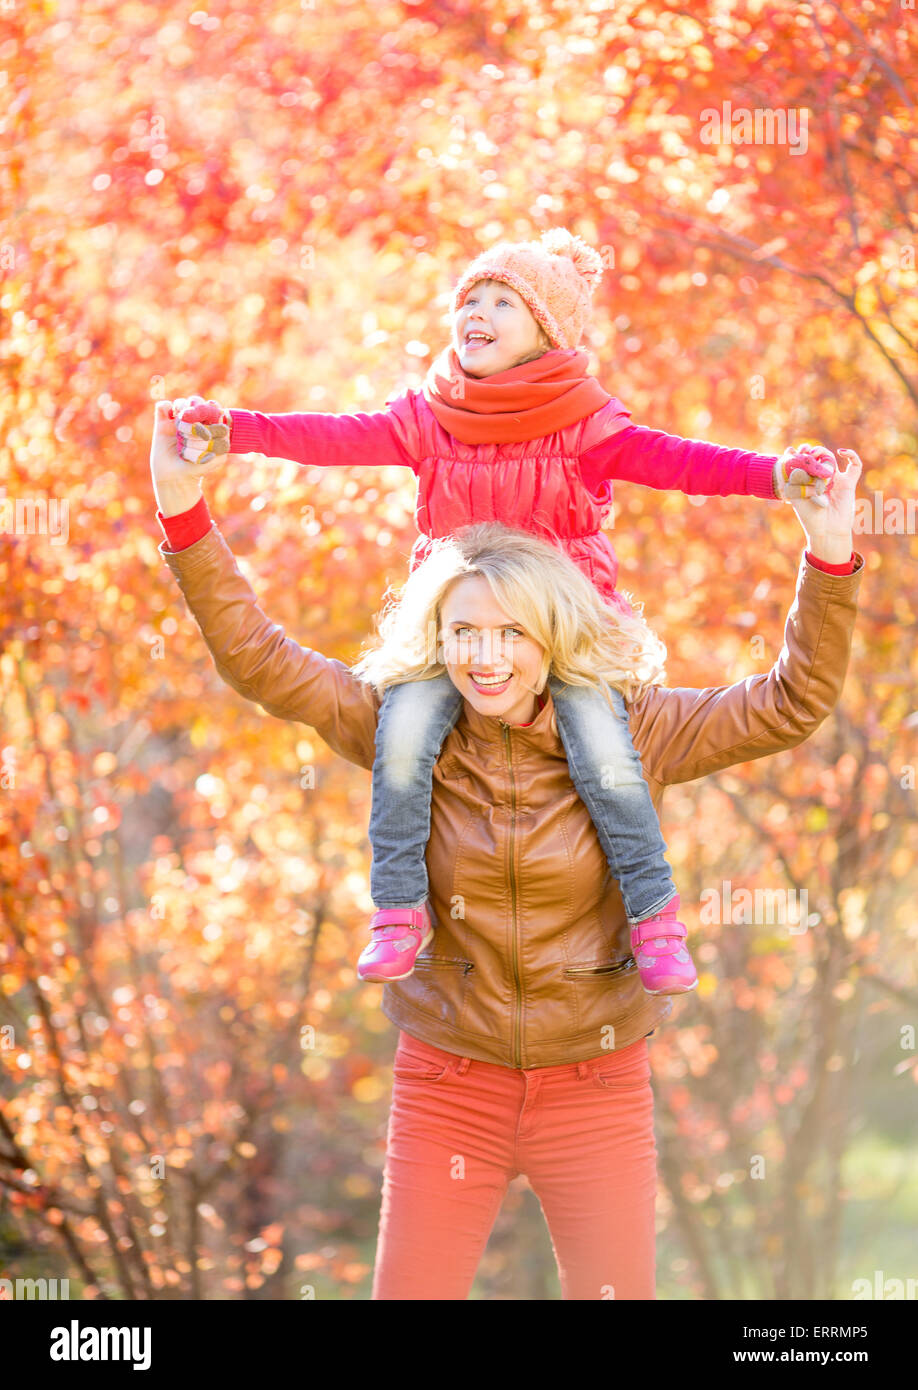 Happy parent and kid walking in fall outdoor - Stock Image